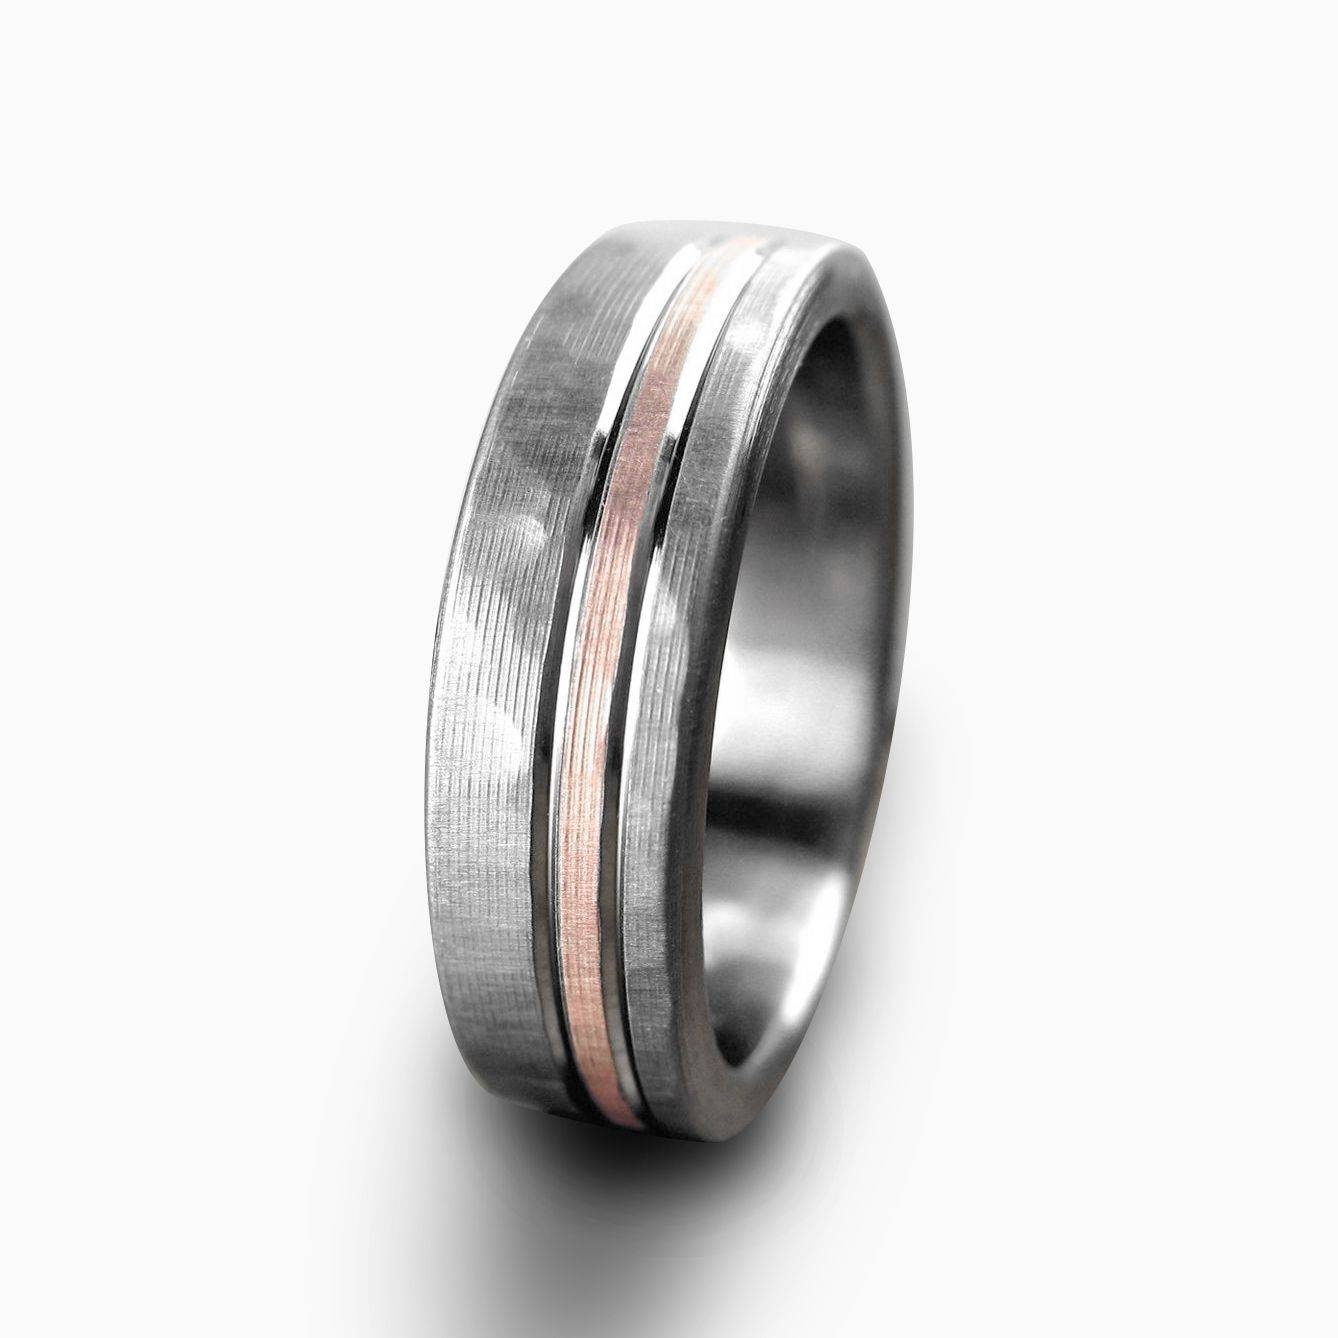 Buy A Hand Crafted Personalized Titanium & Rose Gold Hammered Regarding Black And Rose Gold Men's Wedding Bands (View 4 of 15)